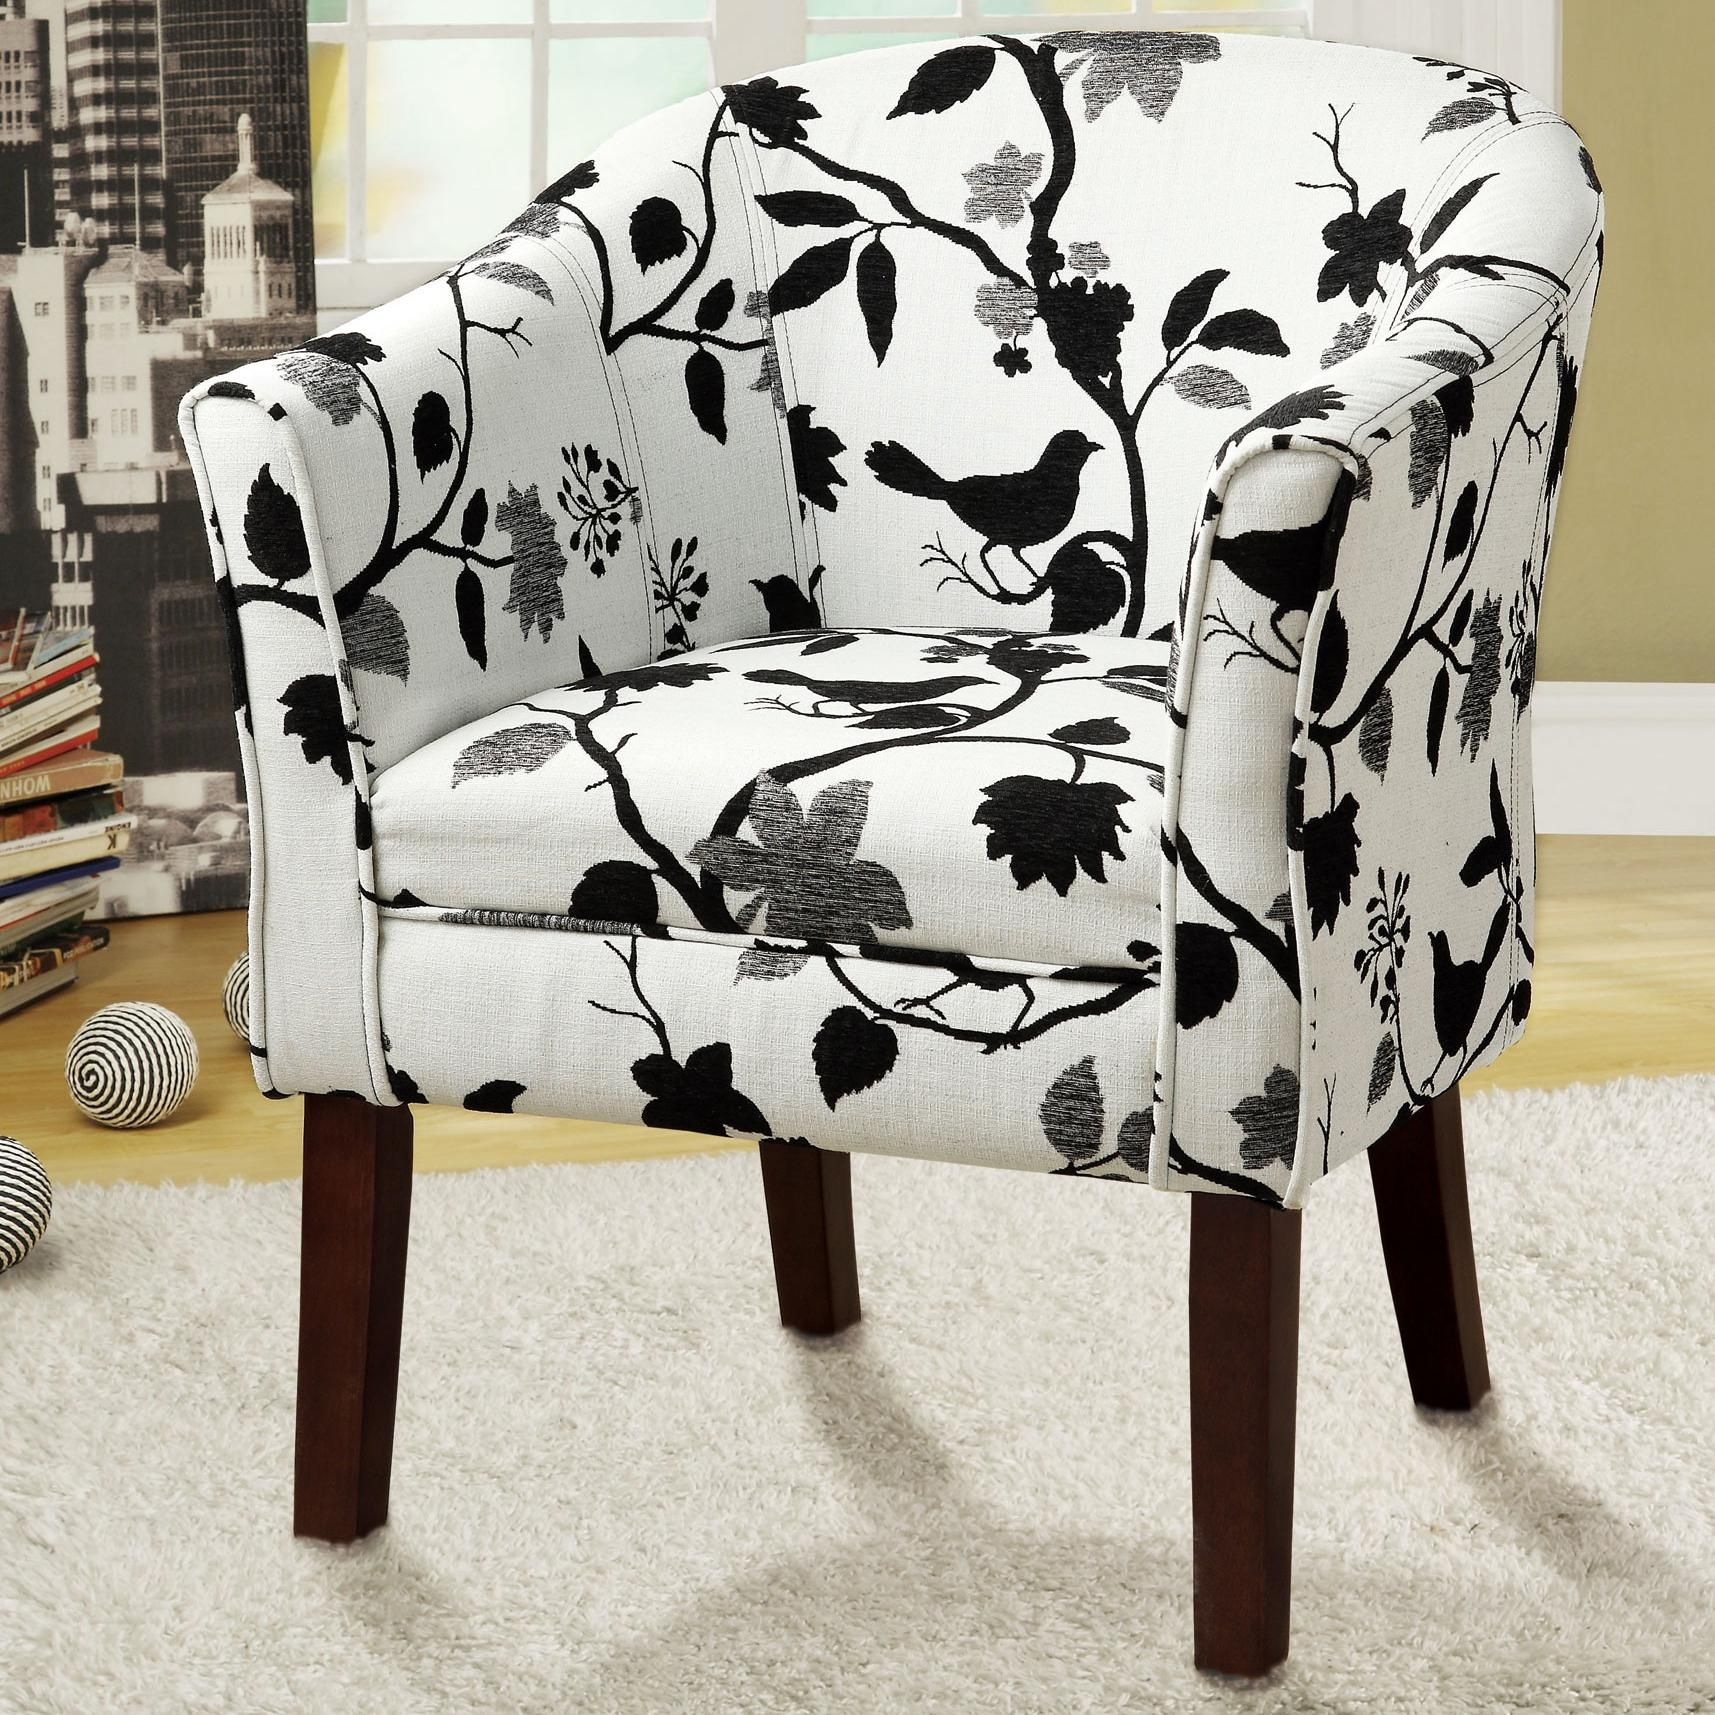 Sillones Individuales Precios Accent Seating Upholstered Accent Chair By Coaster